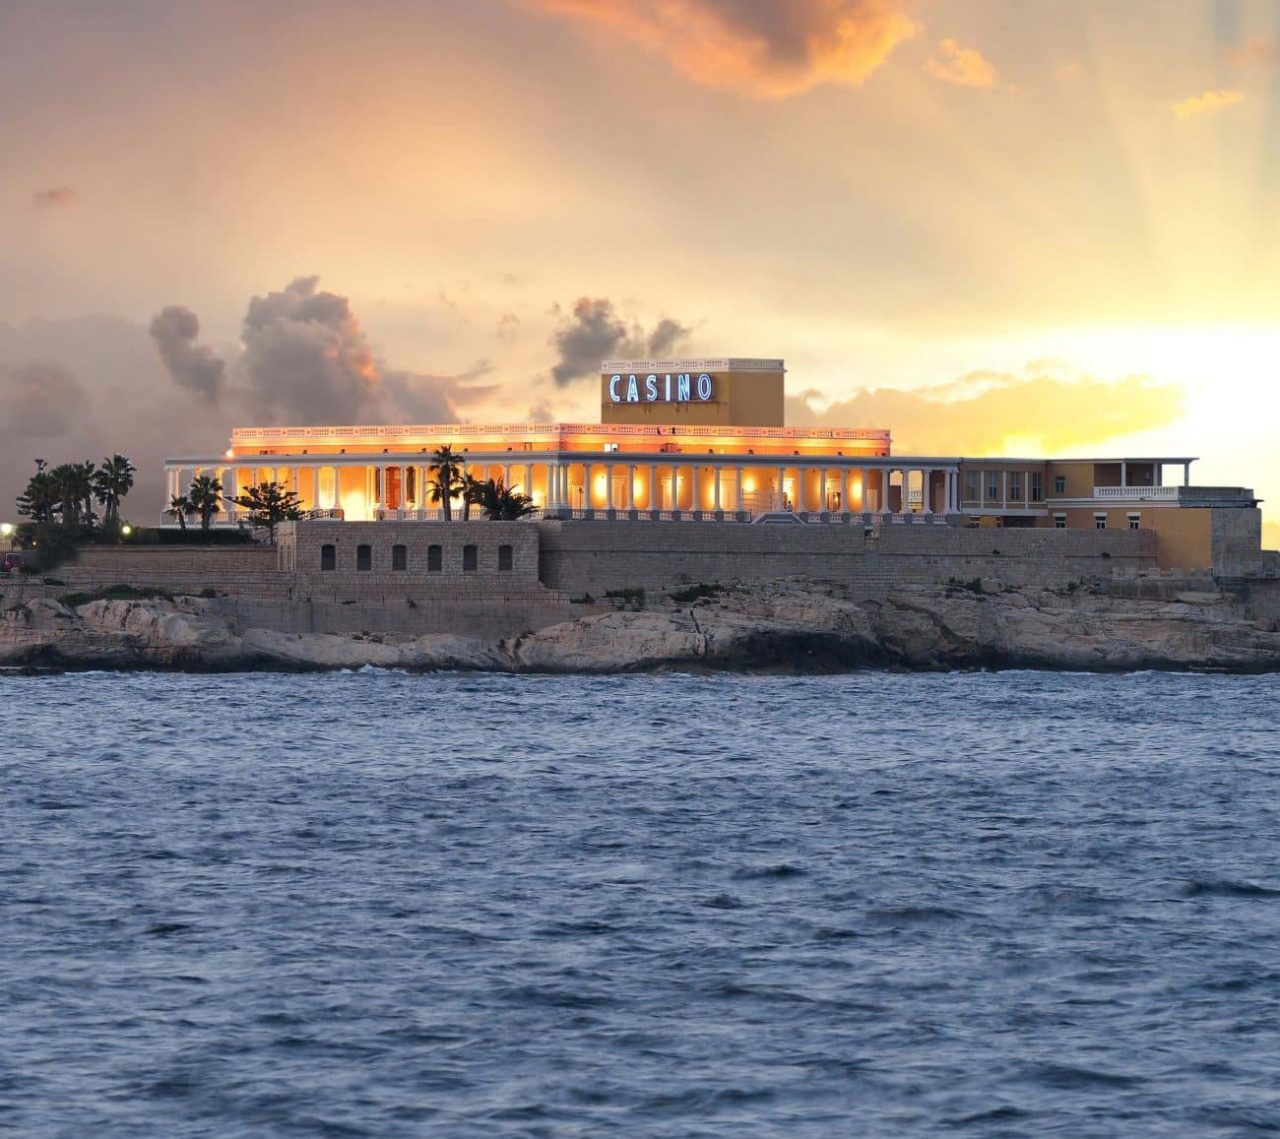 This is a picture of Dragonara Casino. Malta's most famous and picturesque gambling establishment. Under the picture, on this page you can read about gambling, sports betting, lottery, bingo, keno, laws and regulations in Malta.